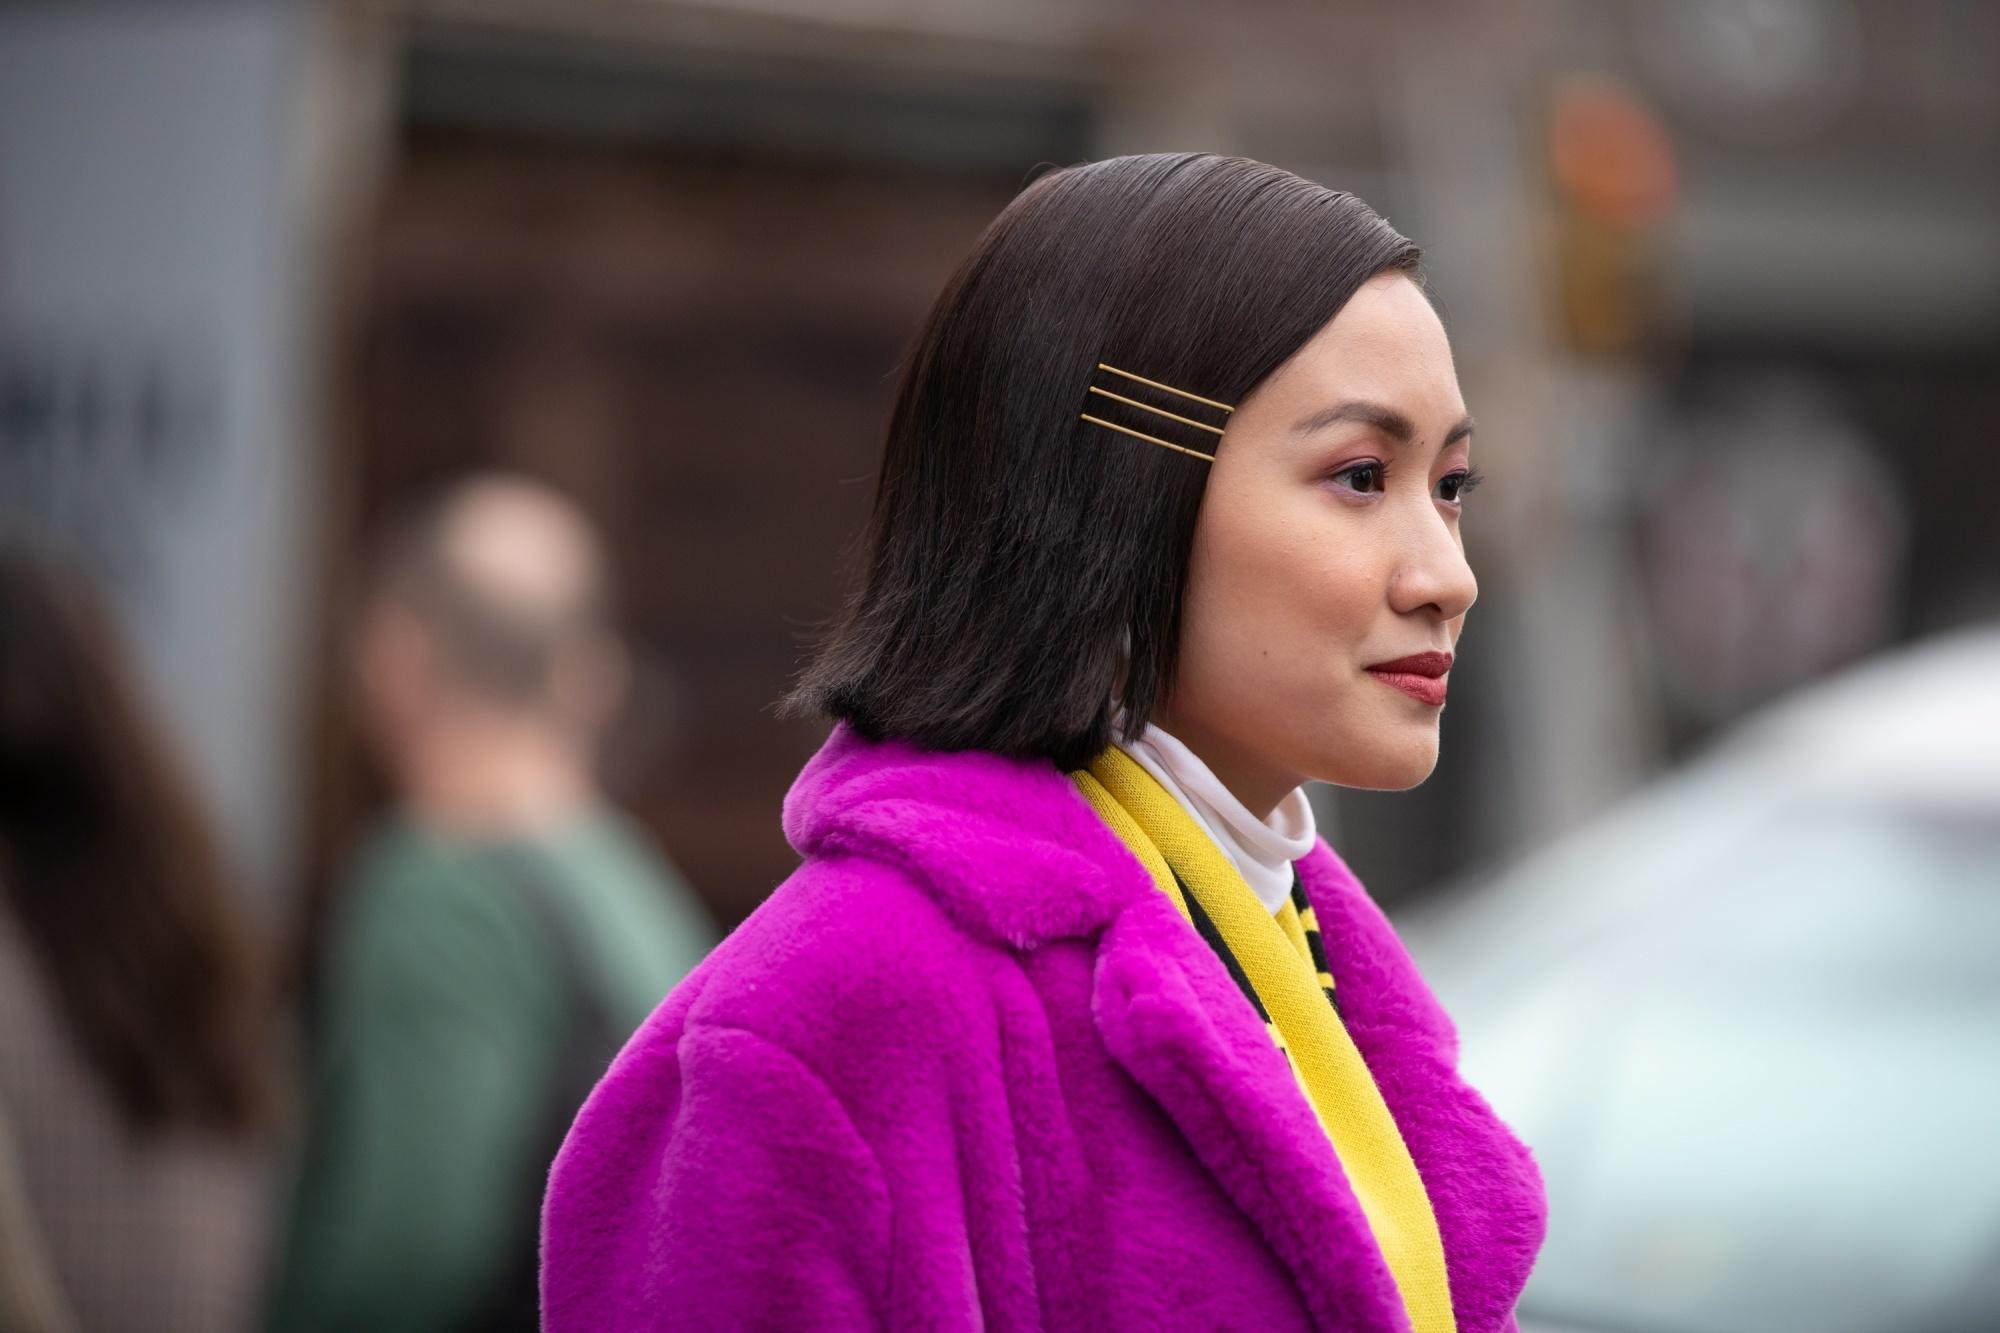 Straight hair ideas: Asian woman with straight long bob hair with gold boby pins